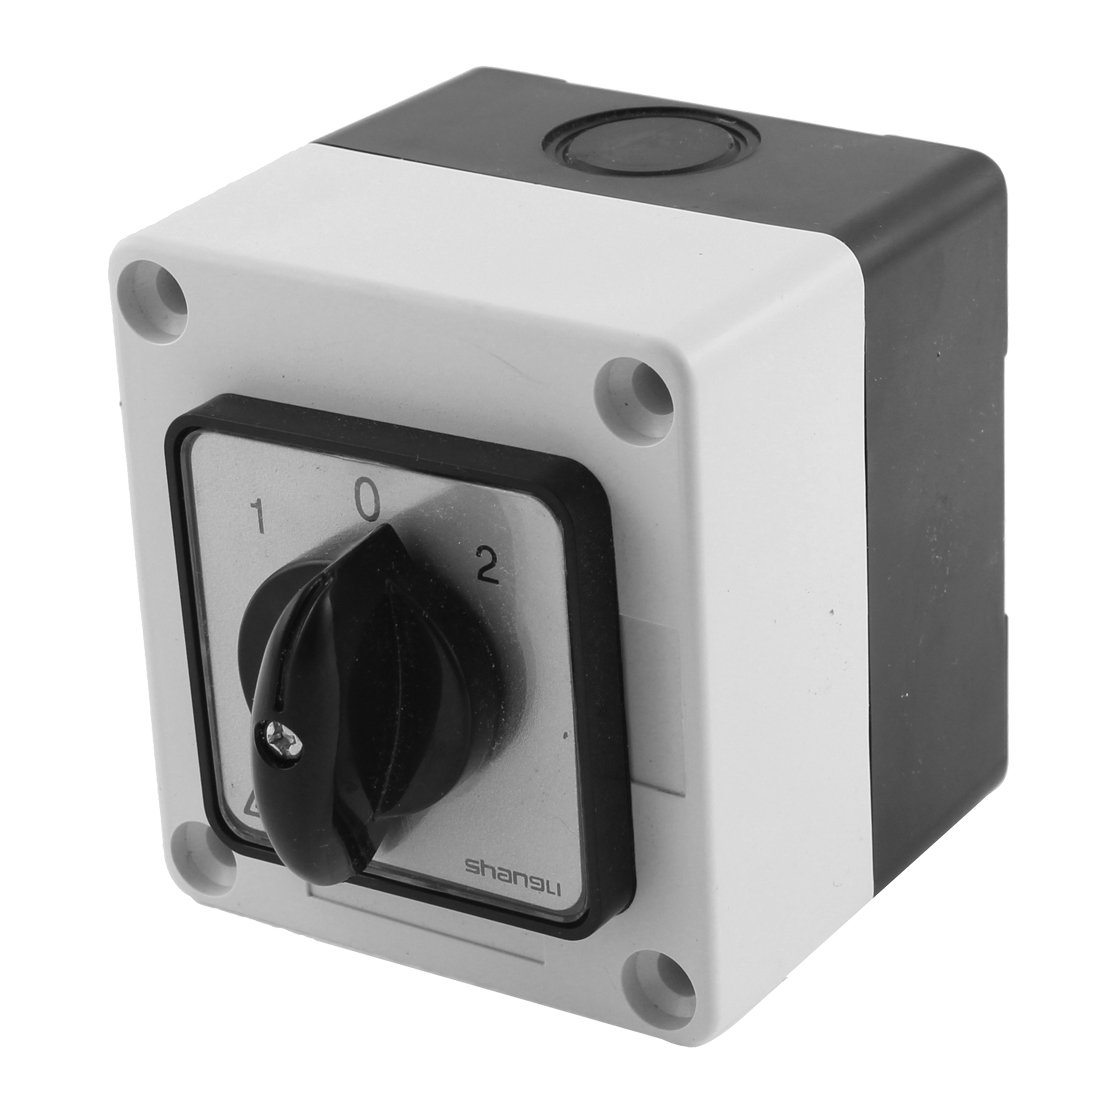 Ui 660V Ith 20A 3 Position Rotary Cam Changeover Switch w Control Box